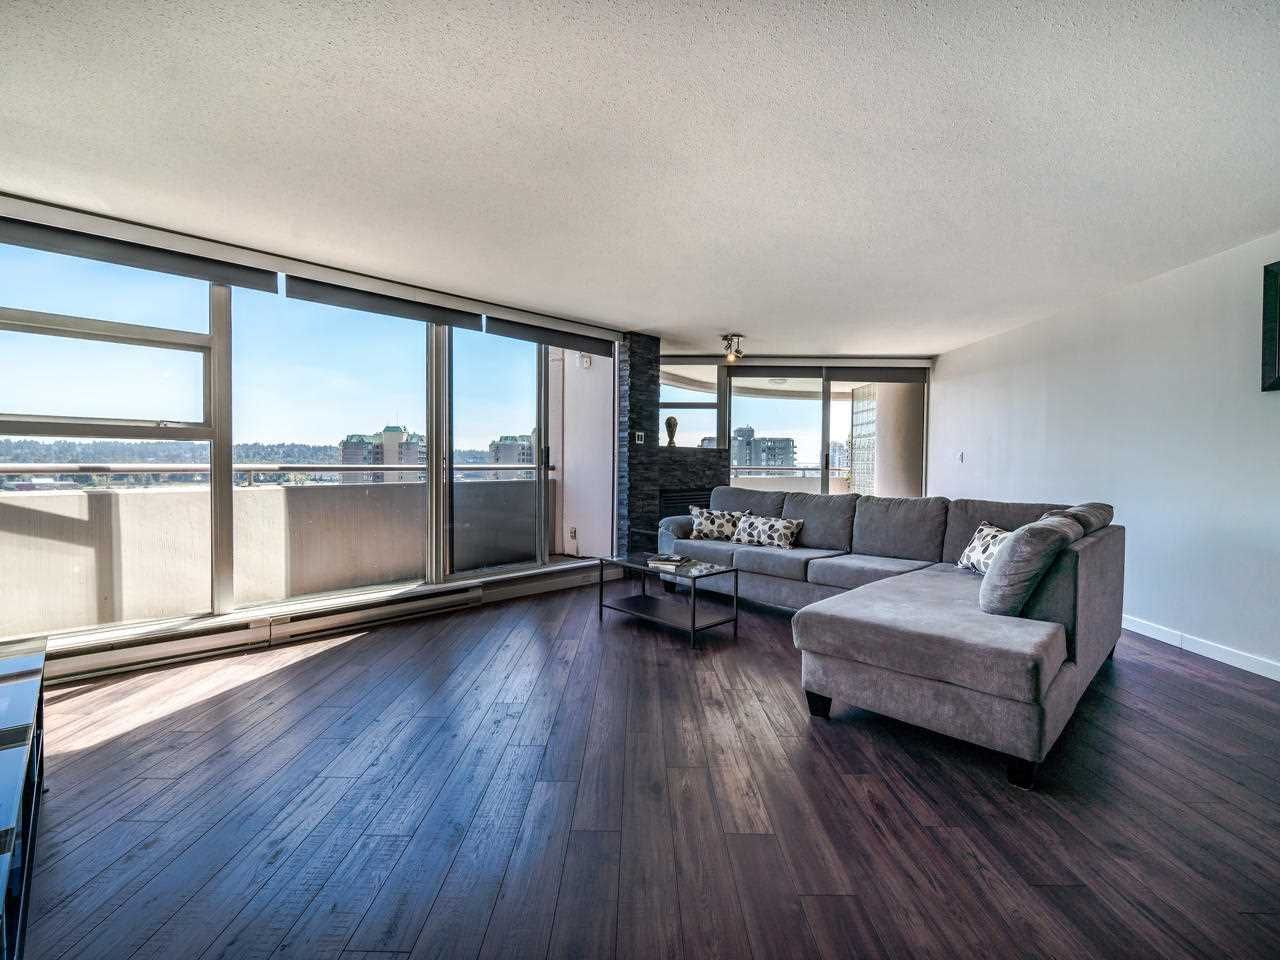 """Main Photo: 1103 98 TENTH Street in New Westminster: Downtown NW Condo for sale in """"Plaza Point"""" : MLS®# R2494856"""